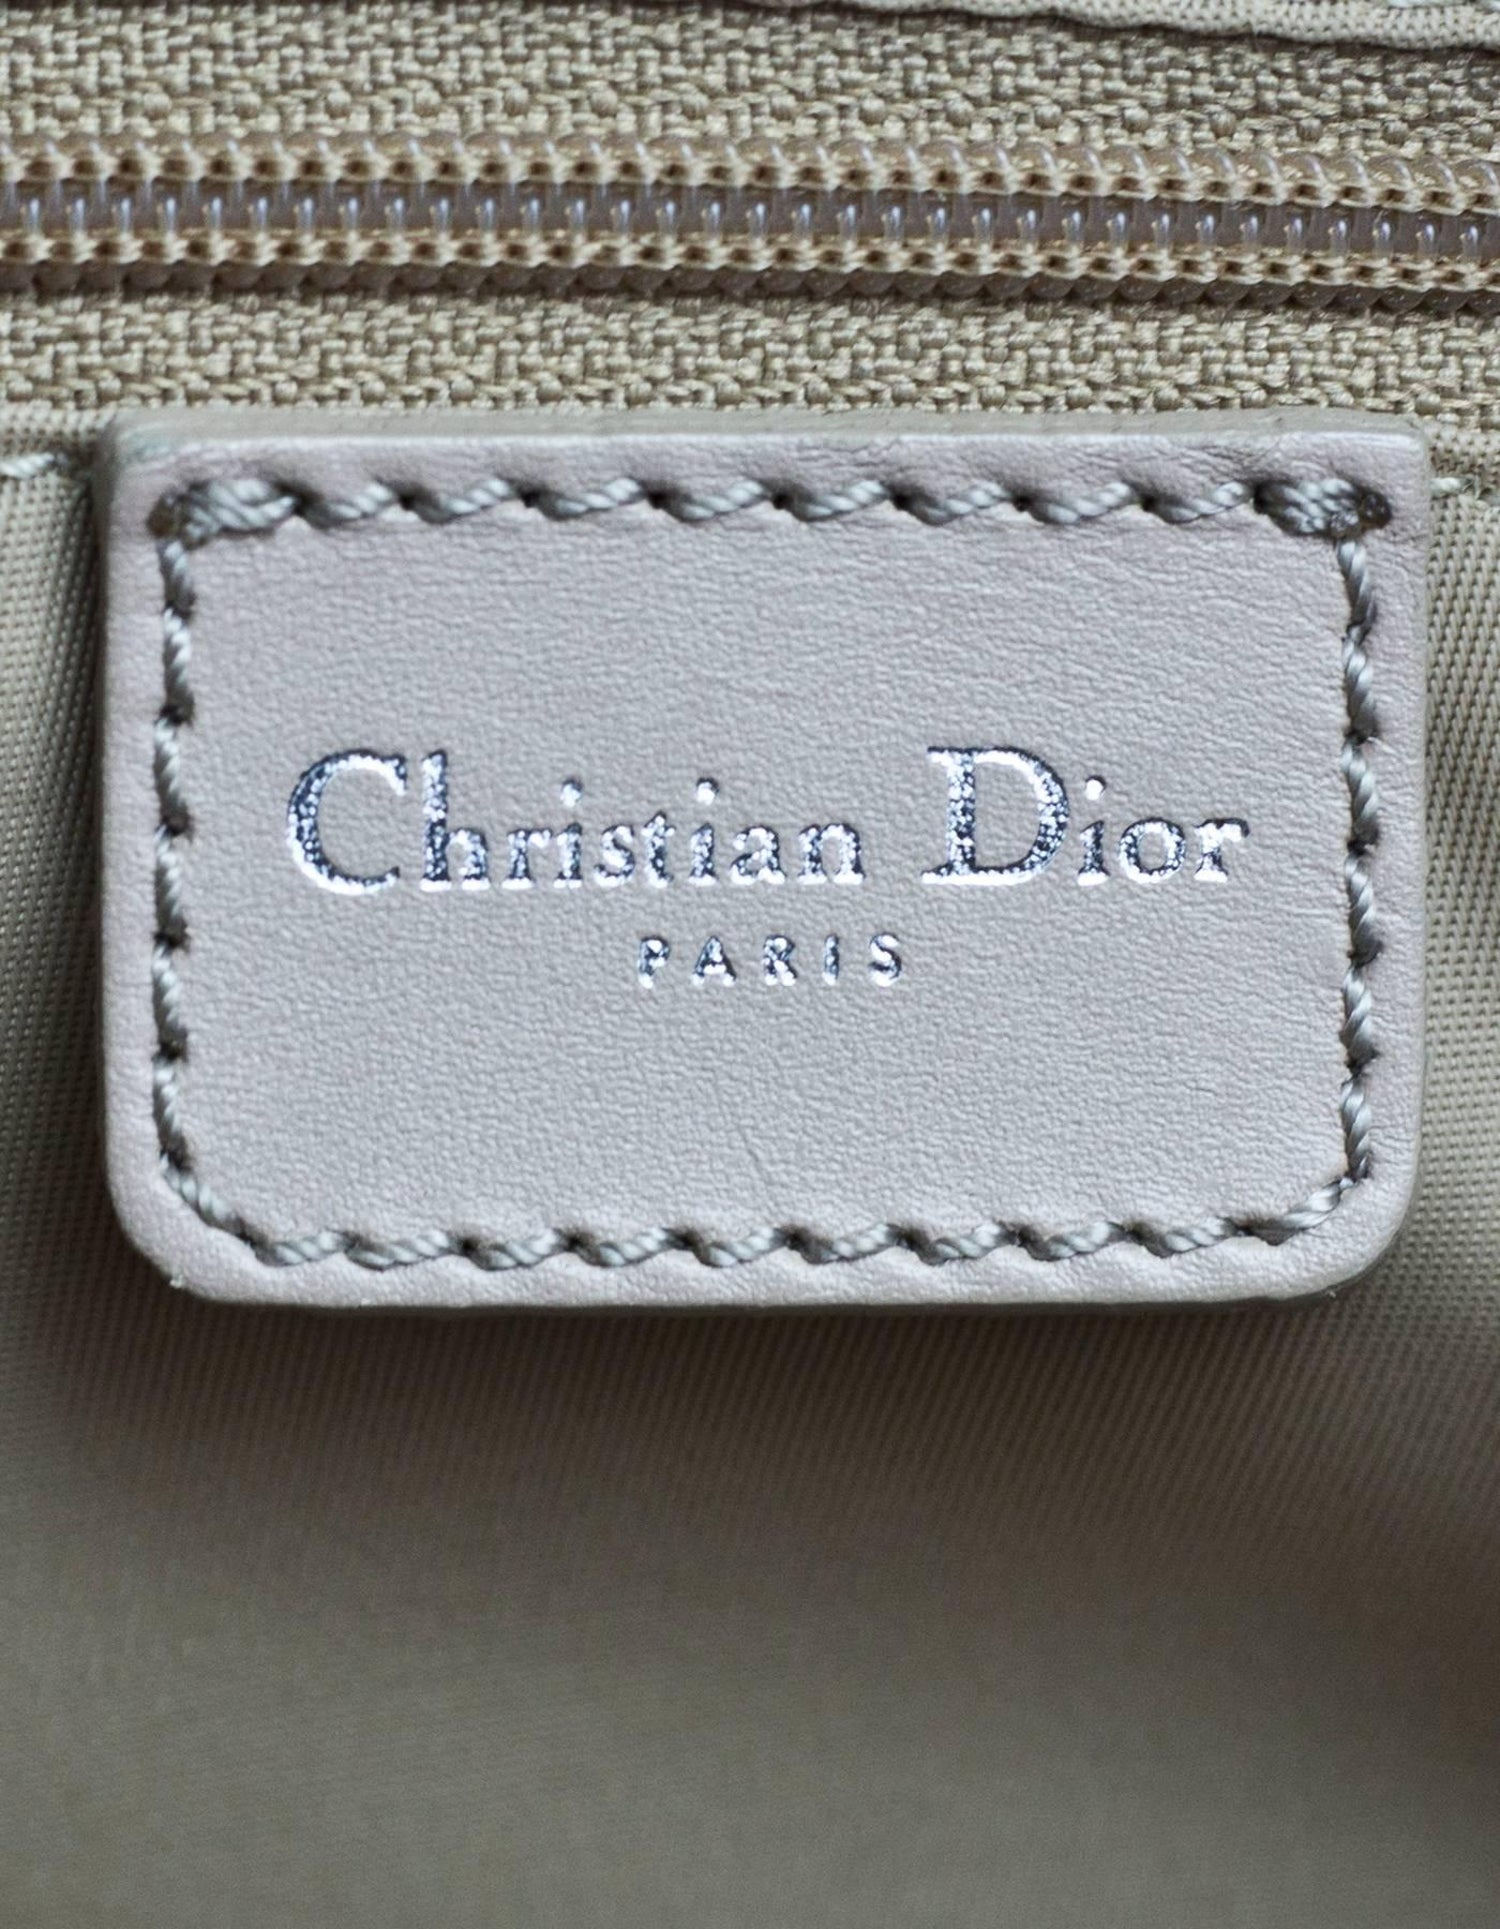 Christian Dior Beige Monogram Trotter Romantique Floral Bow Small Boston  Bag For Sale at 1stdibs 2997bab4a5535